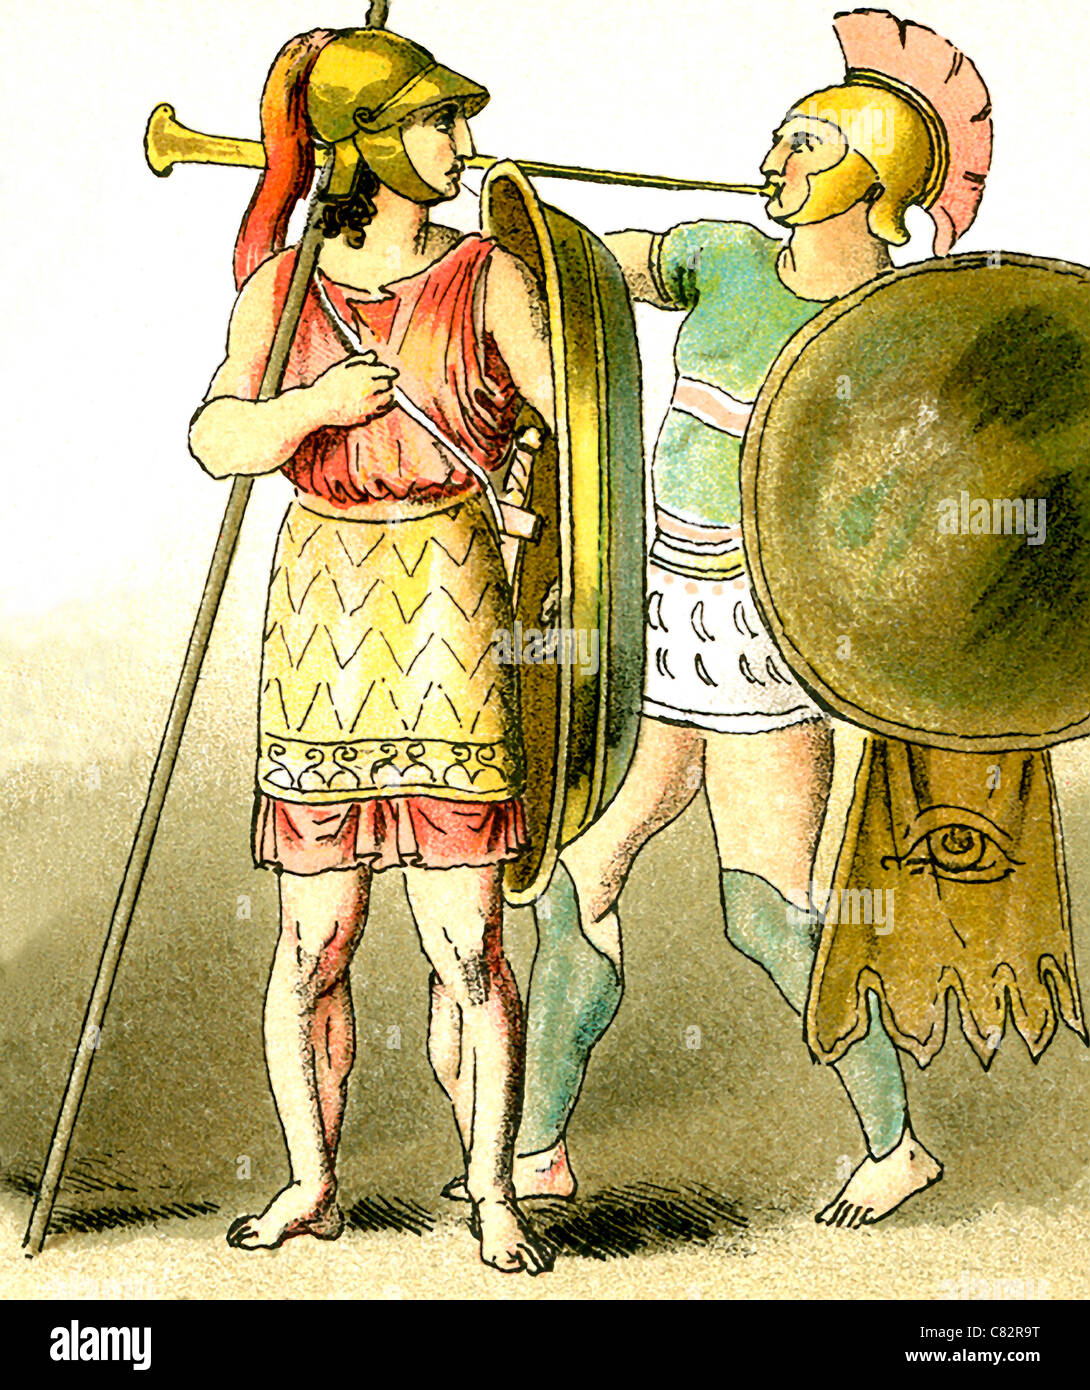 These illustrations of ancient Greeks represent, from left to right: a warrior and a trumpeter. The illustrations - Stock Image